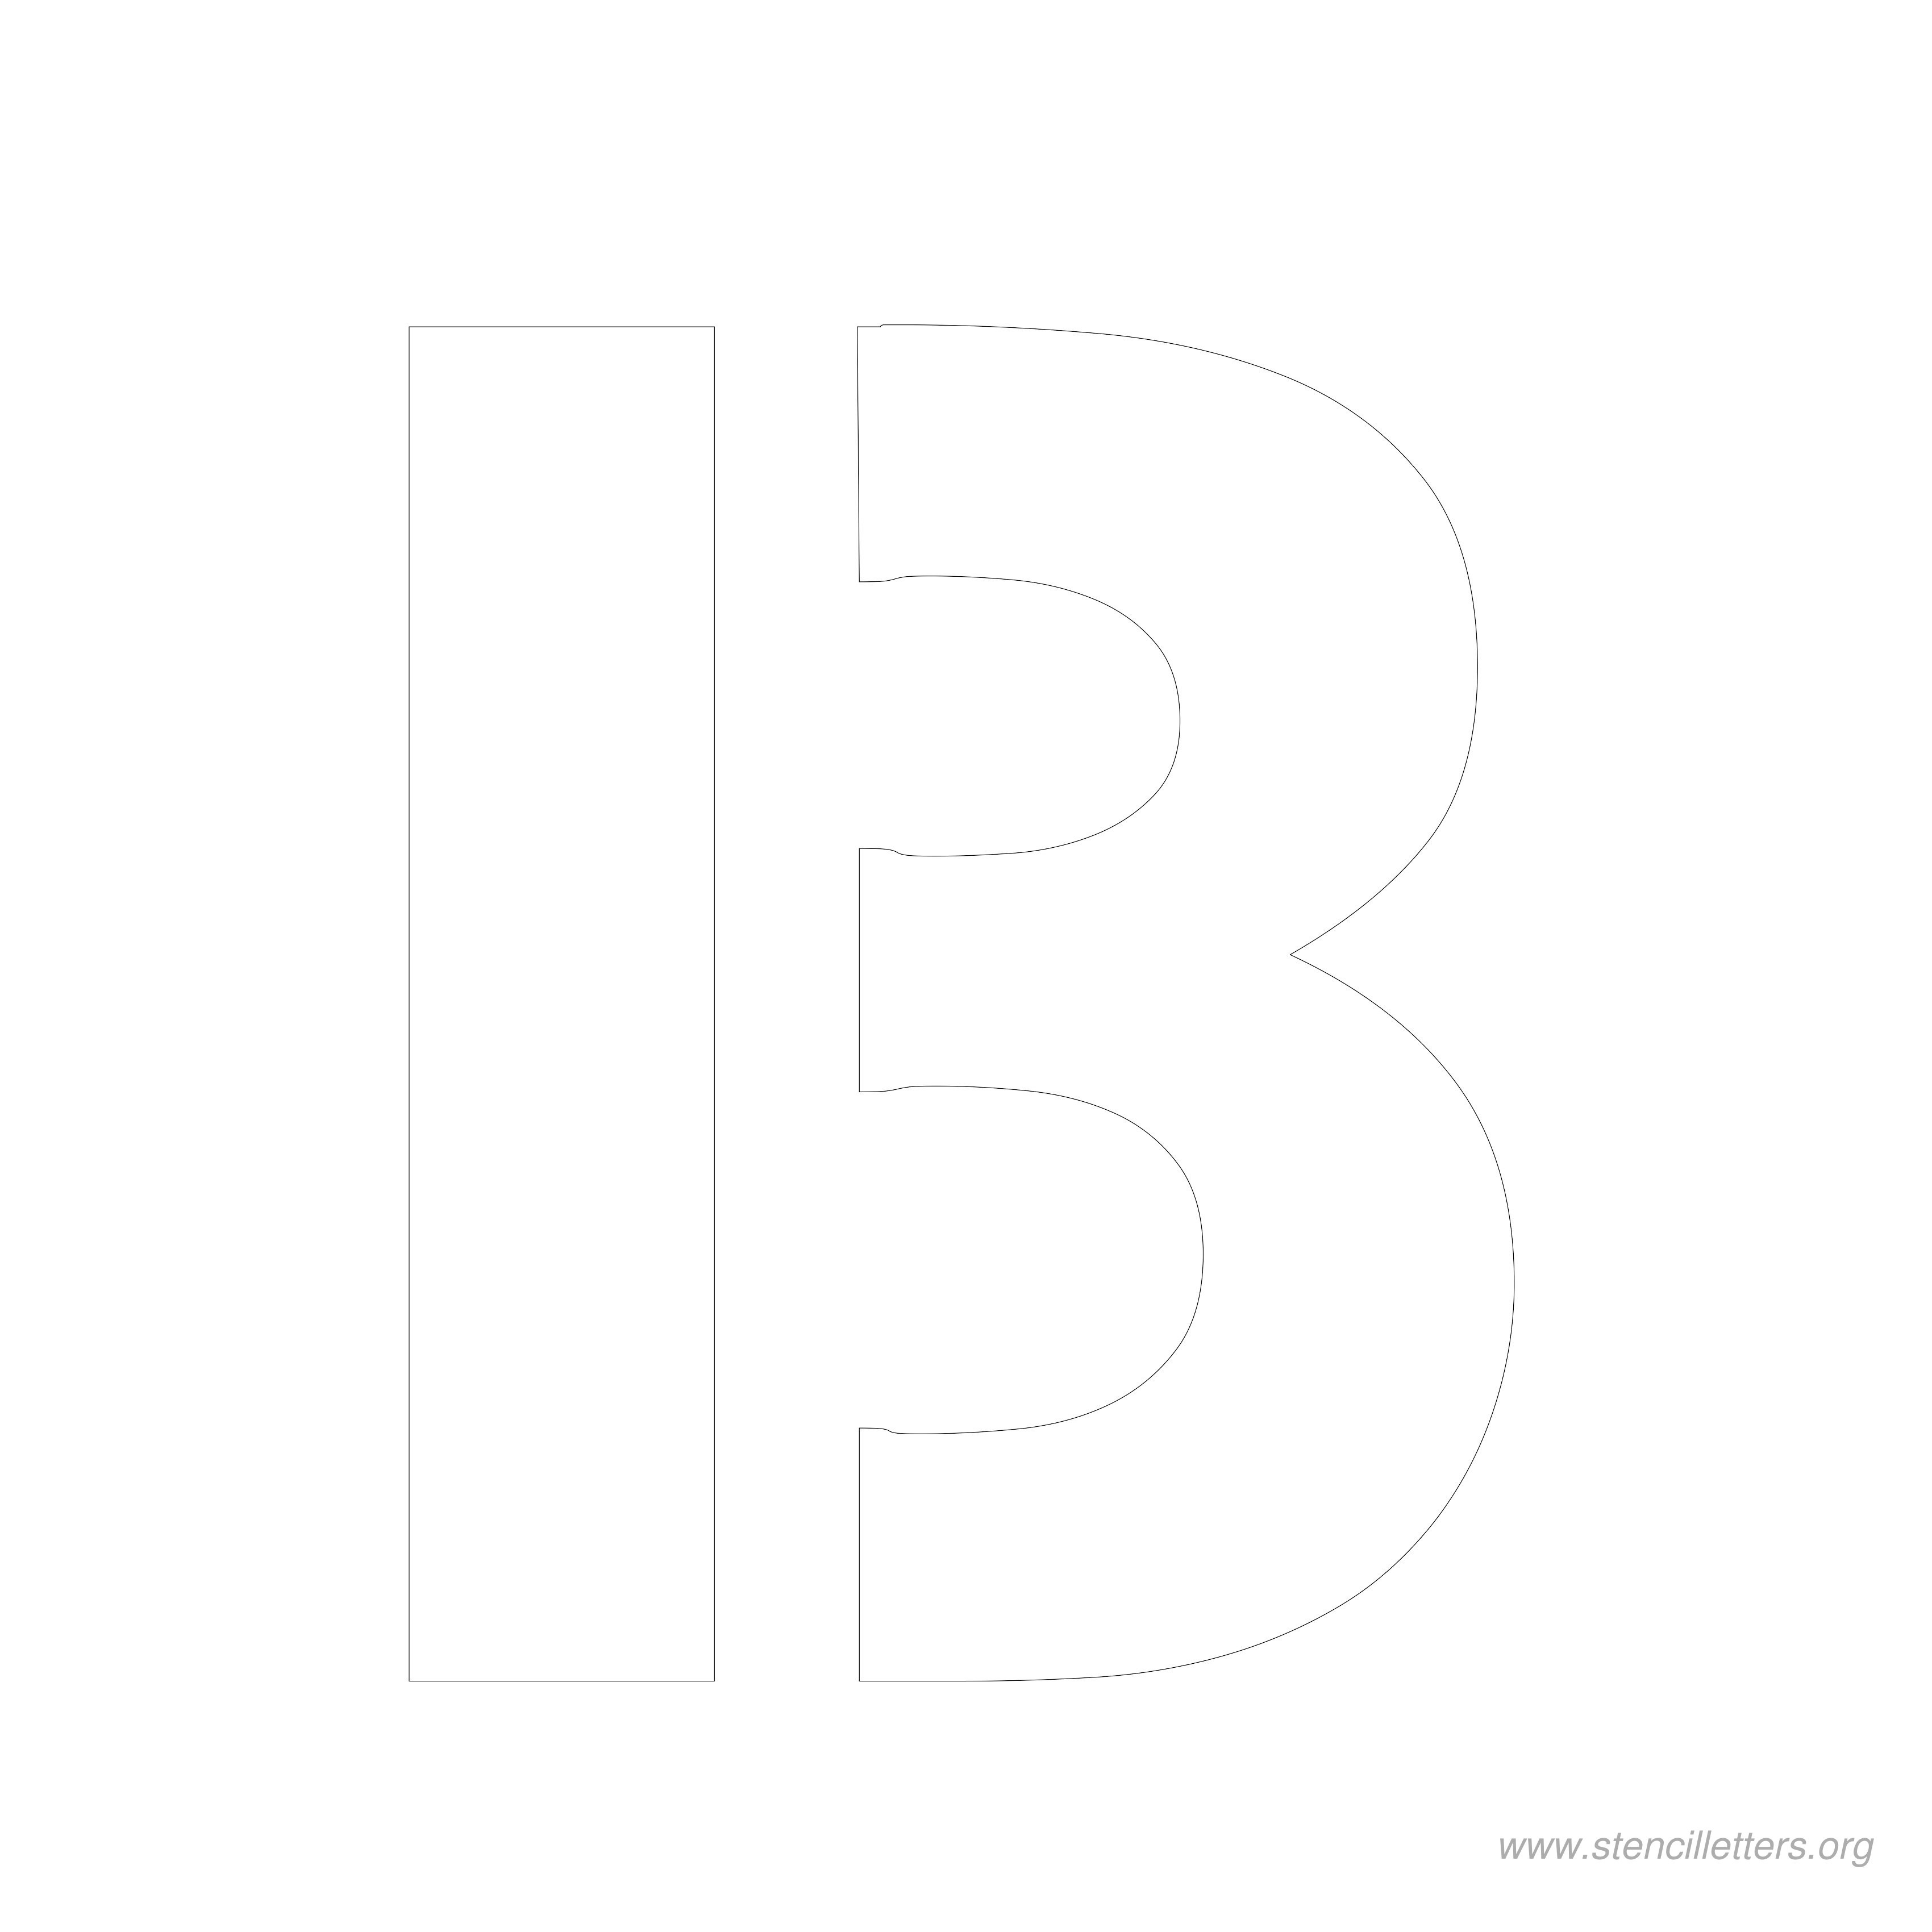 8 Inch Stencil Letters   Stencil Letters Org - Free Printable 8 Inch Letters